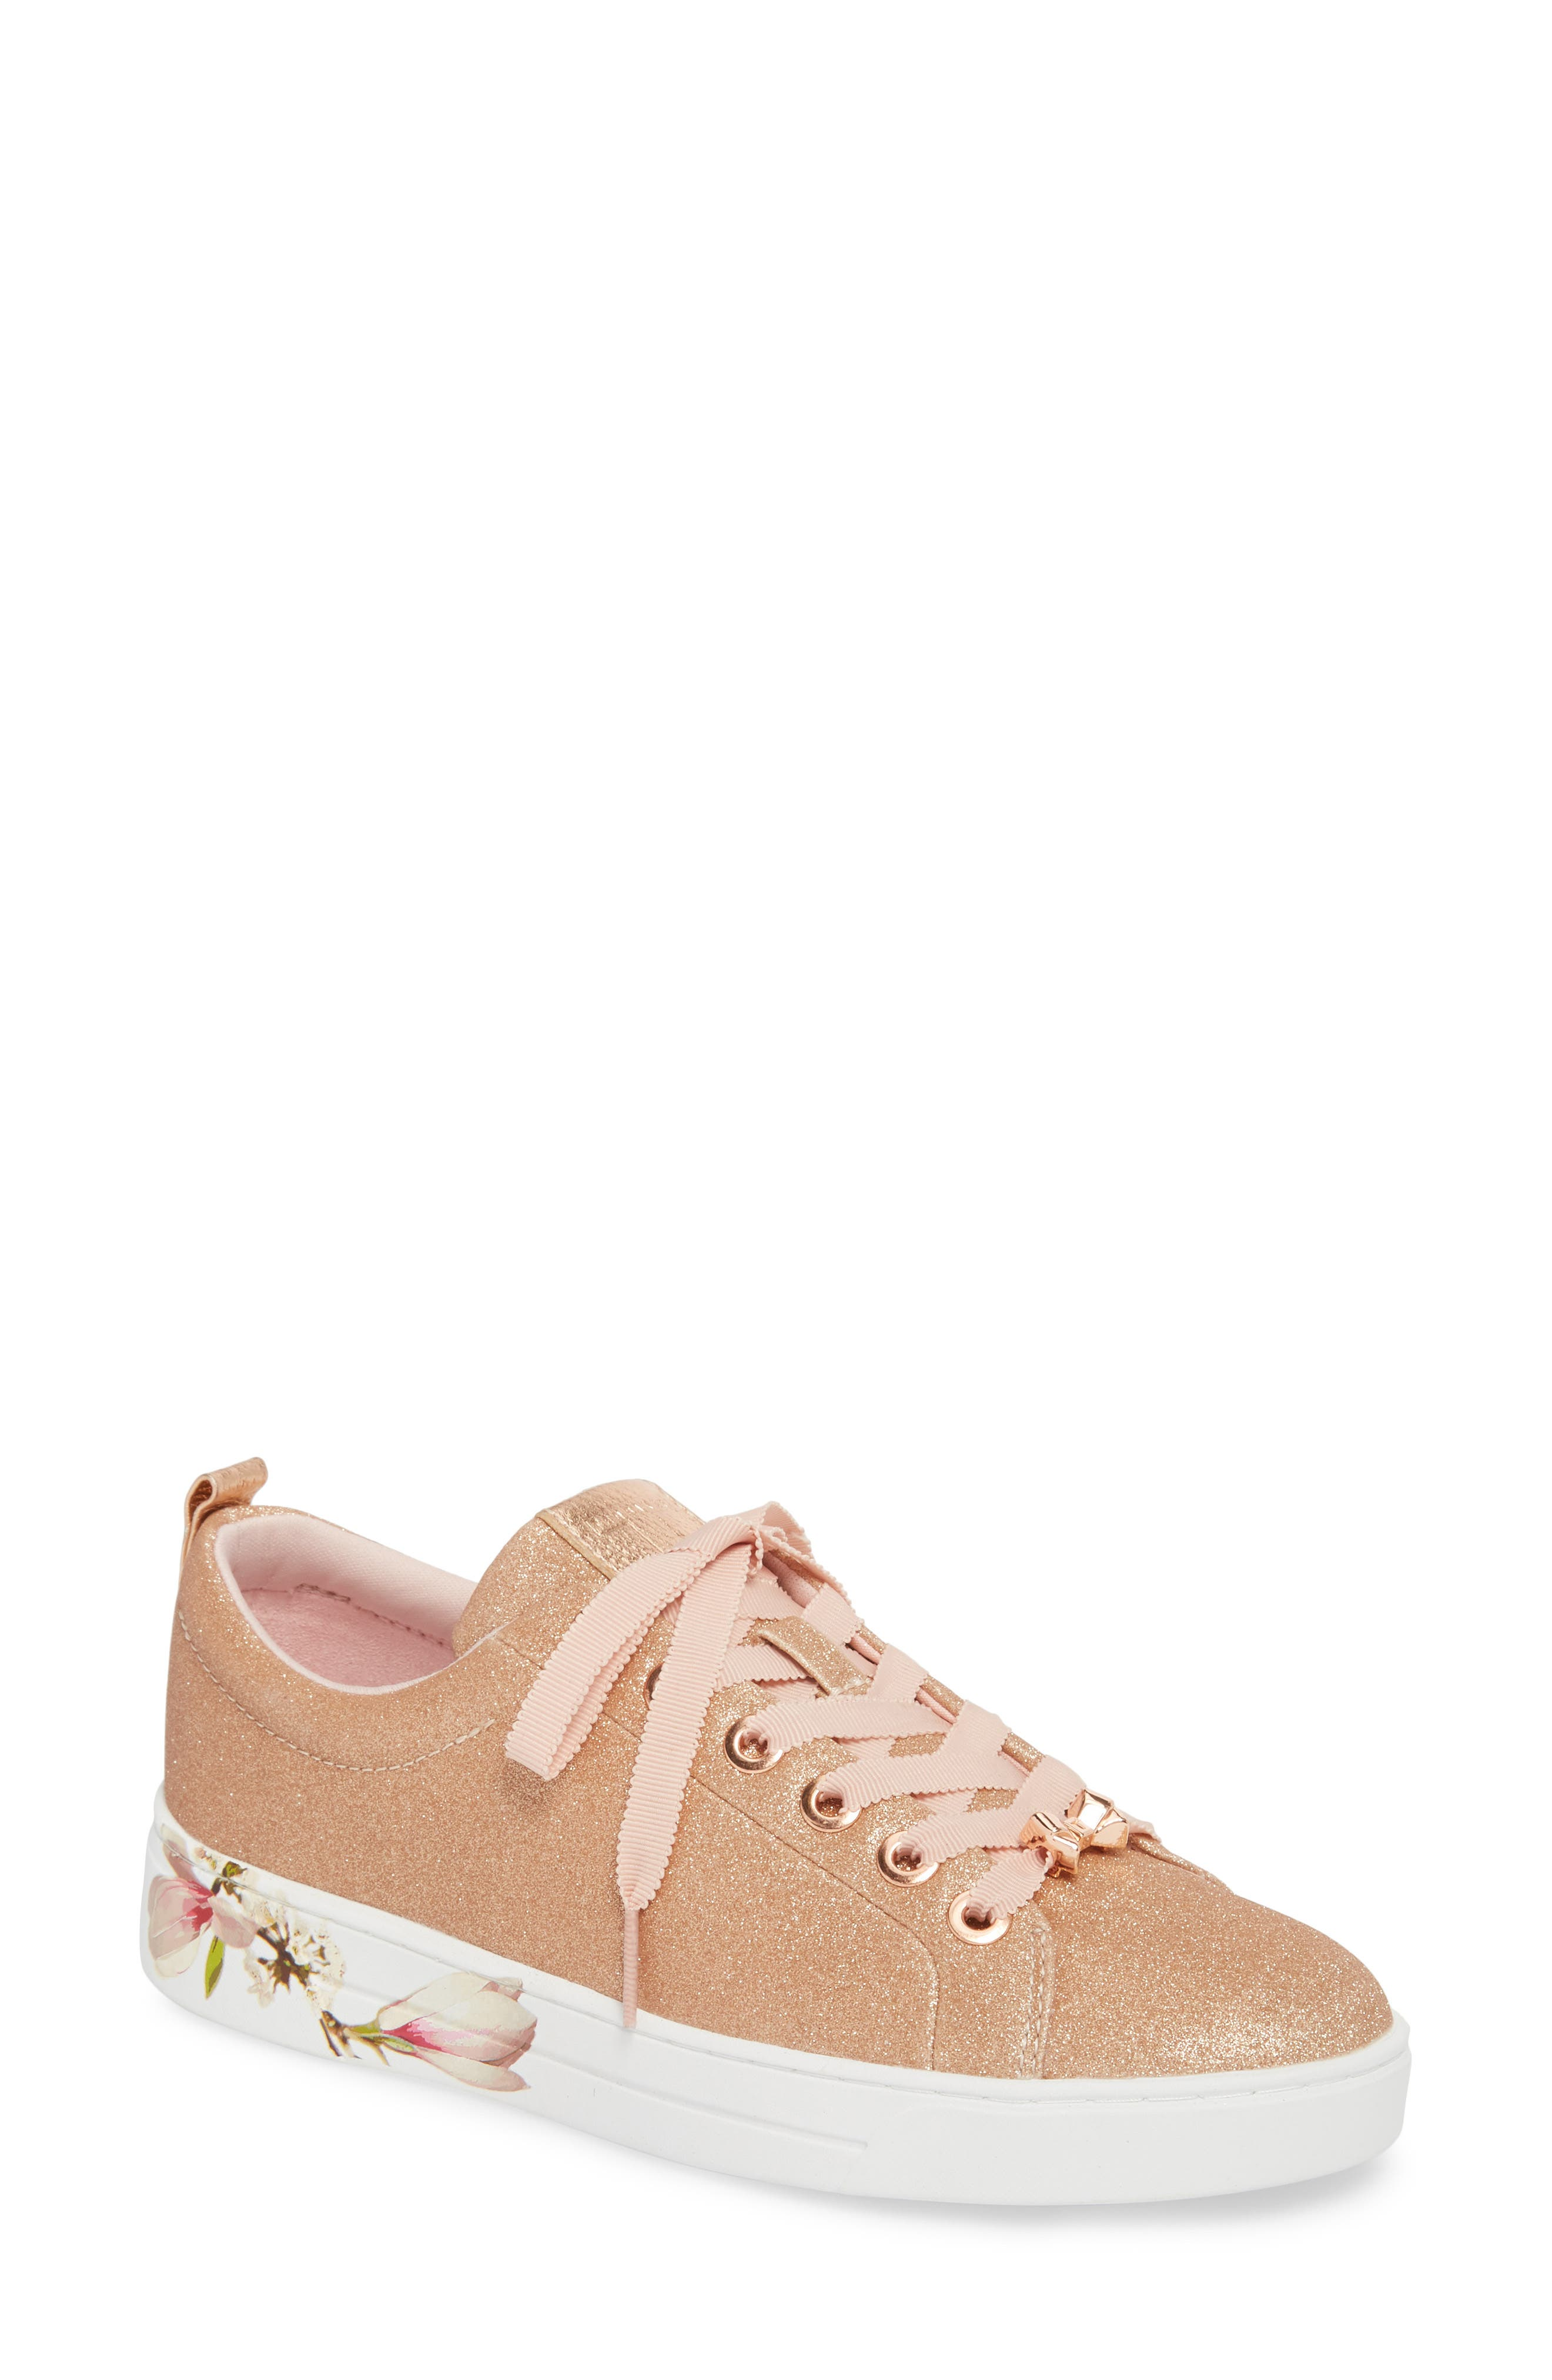 Kelleit Sneaker,                         Main,                         color, ROSE GOLD HARMONY